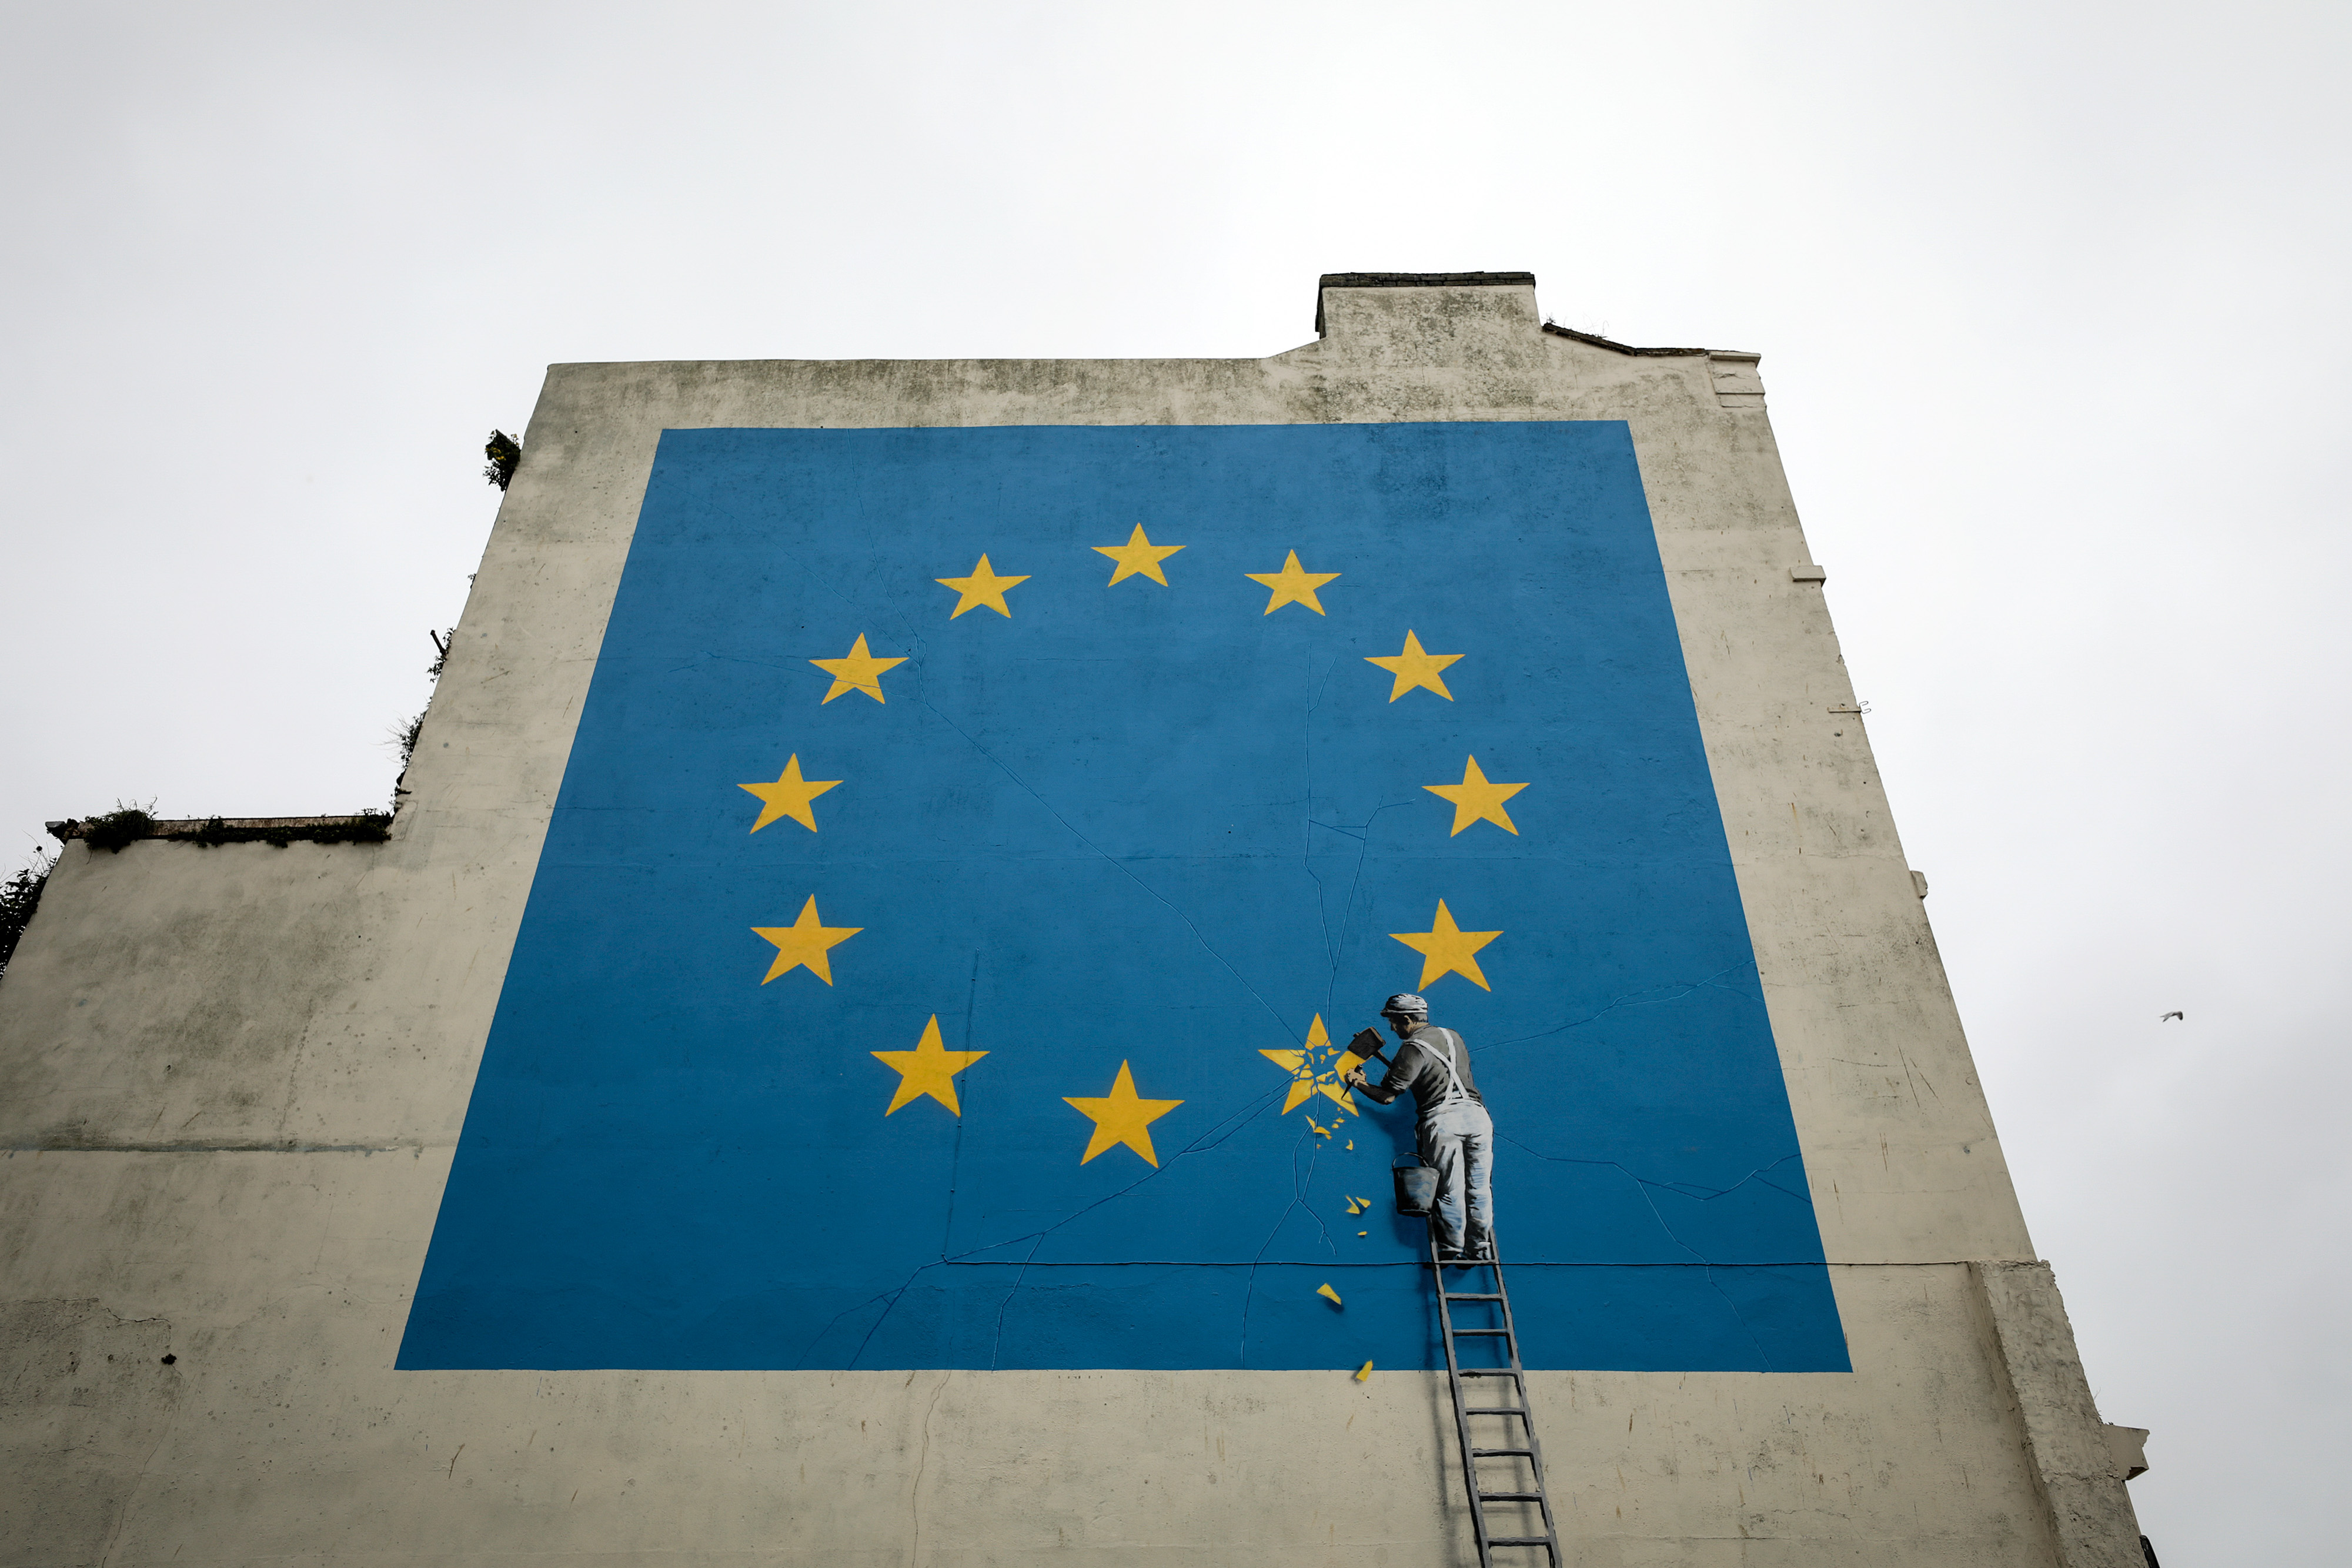 A mural depicting a European Union (EU) flag being chiseled by a workman sits on the side of a disused building near the ferry terminal in Dover, U.K., on Monday, May 8, 2017.